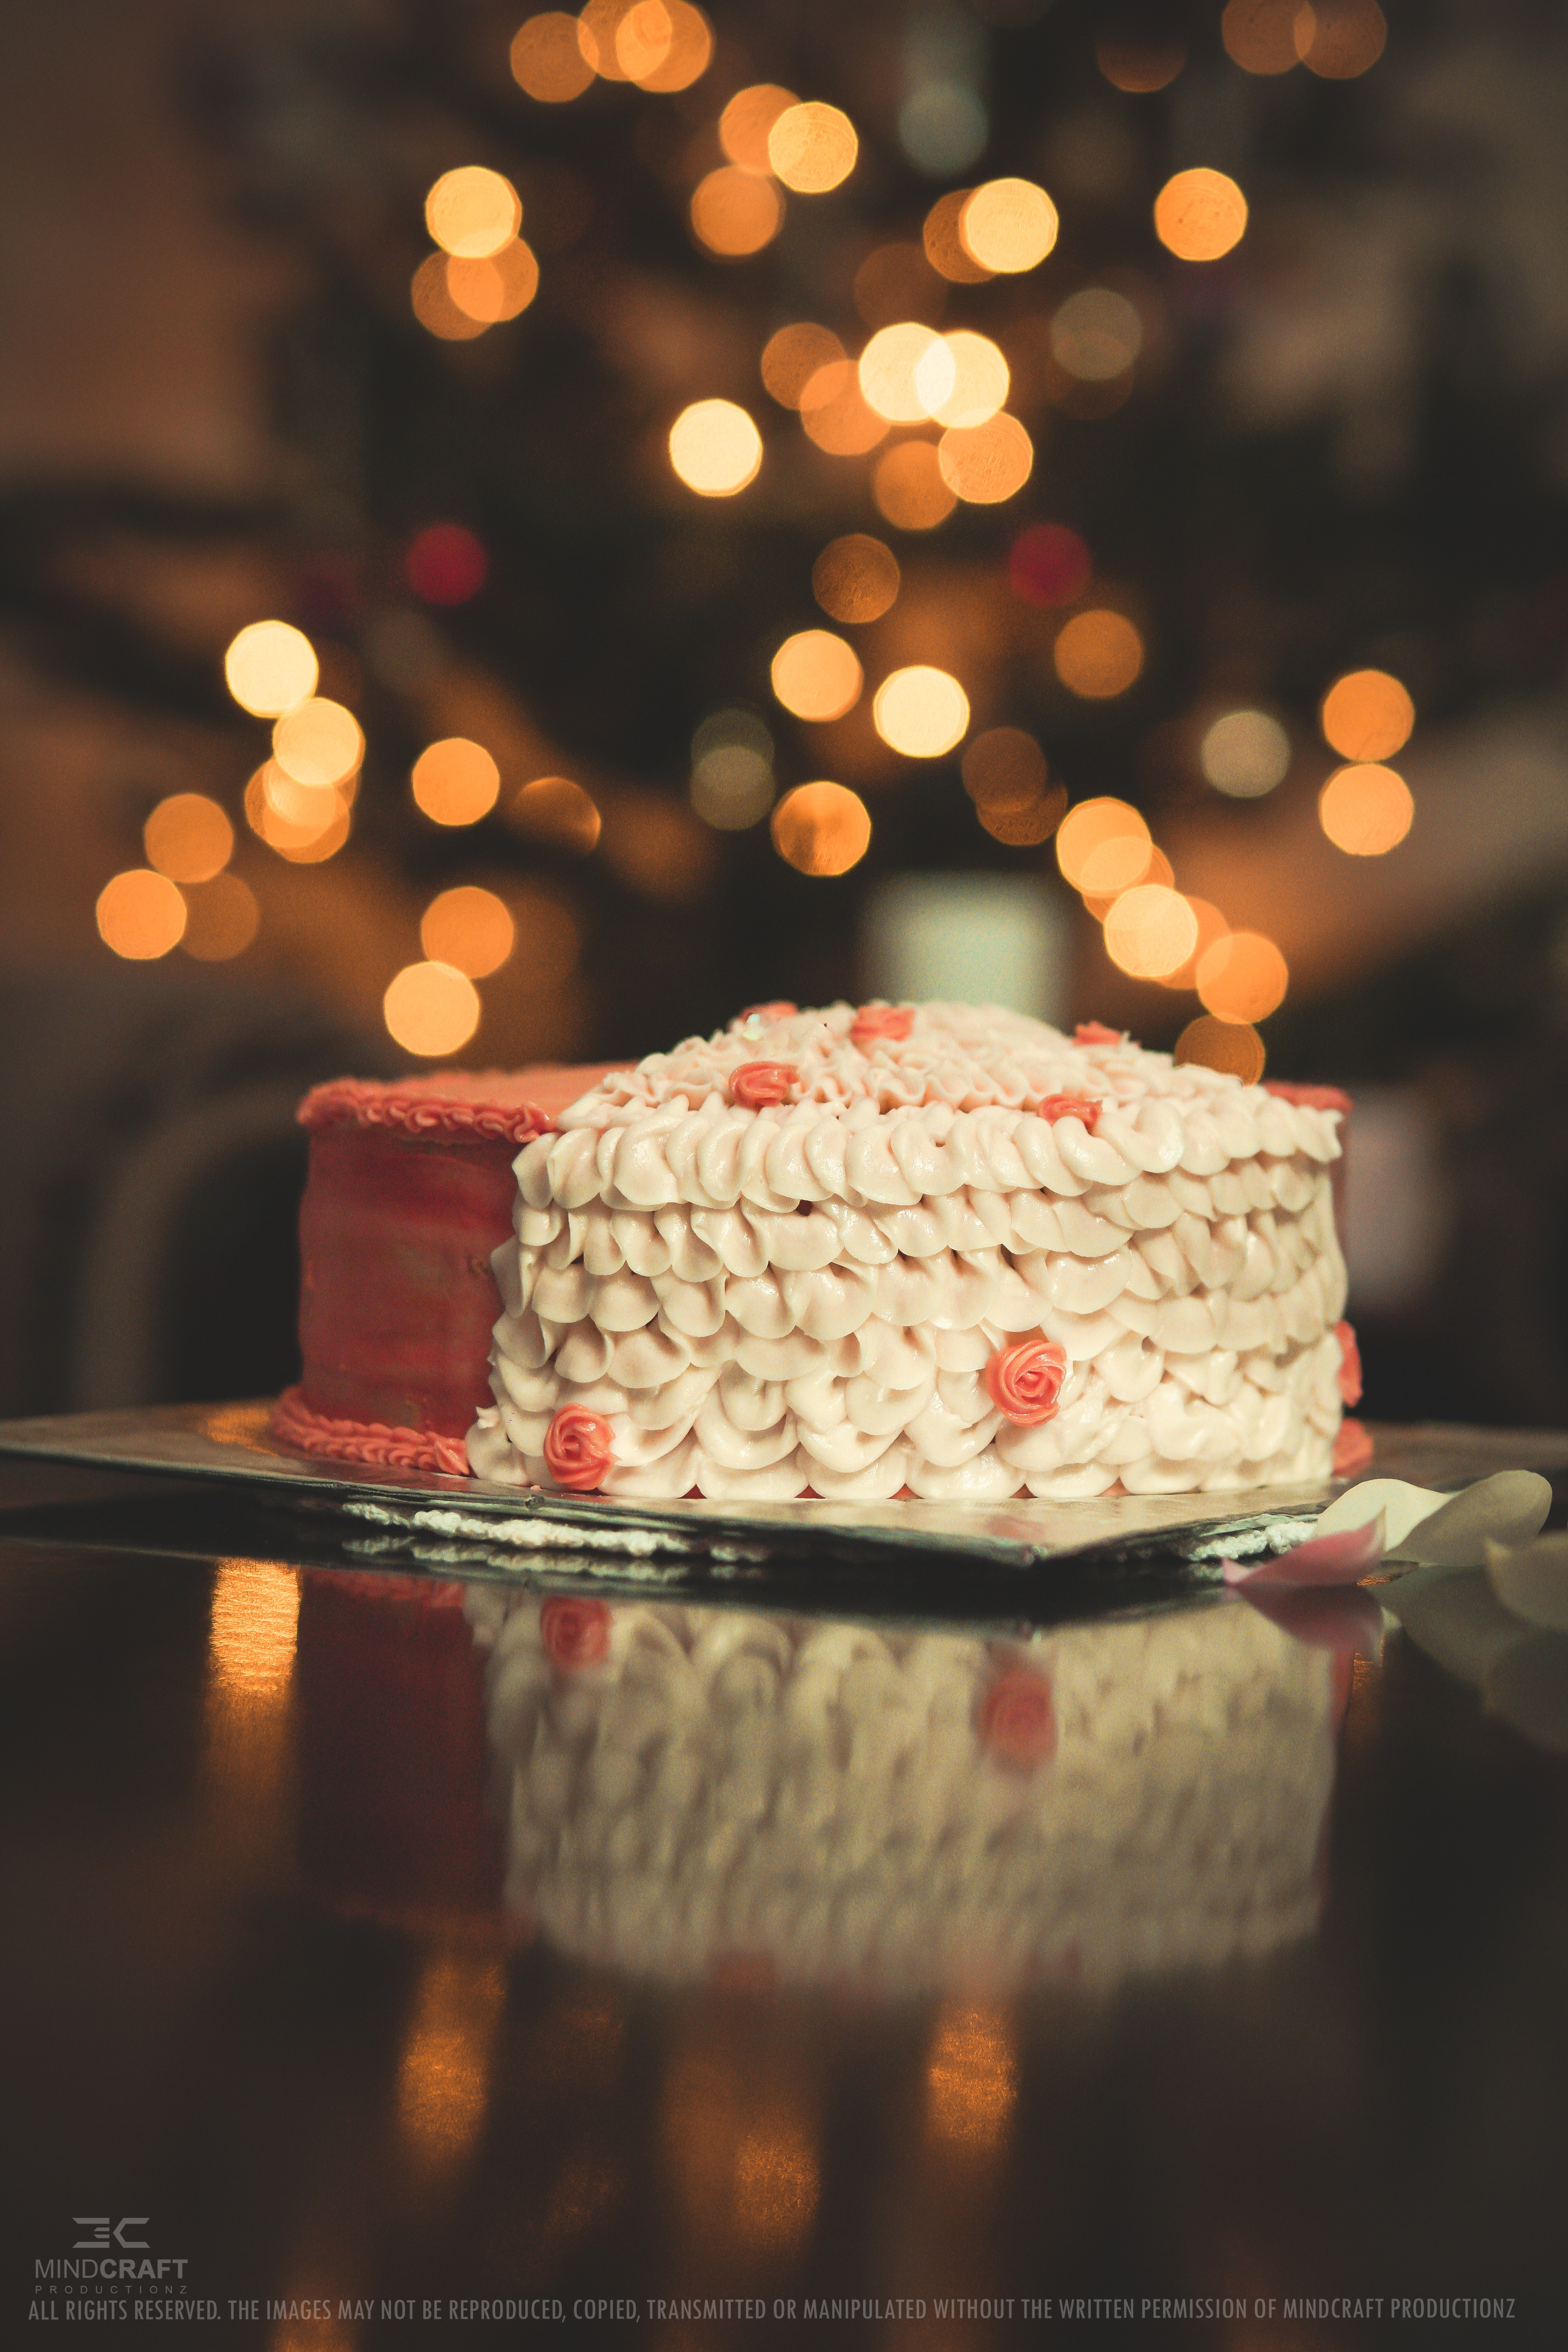 images?q=tbn:ANd9GcQh_l3eQ5xwiPy07kGEXjmjgmBKBRB7H2mRxCGhv1tFWg5c_mWT Ideas For Birthday Cake Photography Cake Ideas @http://capturingmomentsphotography.net.info